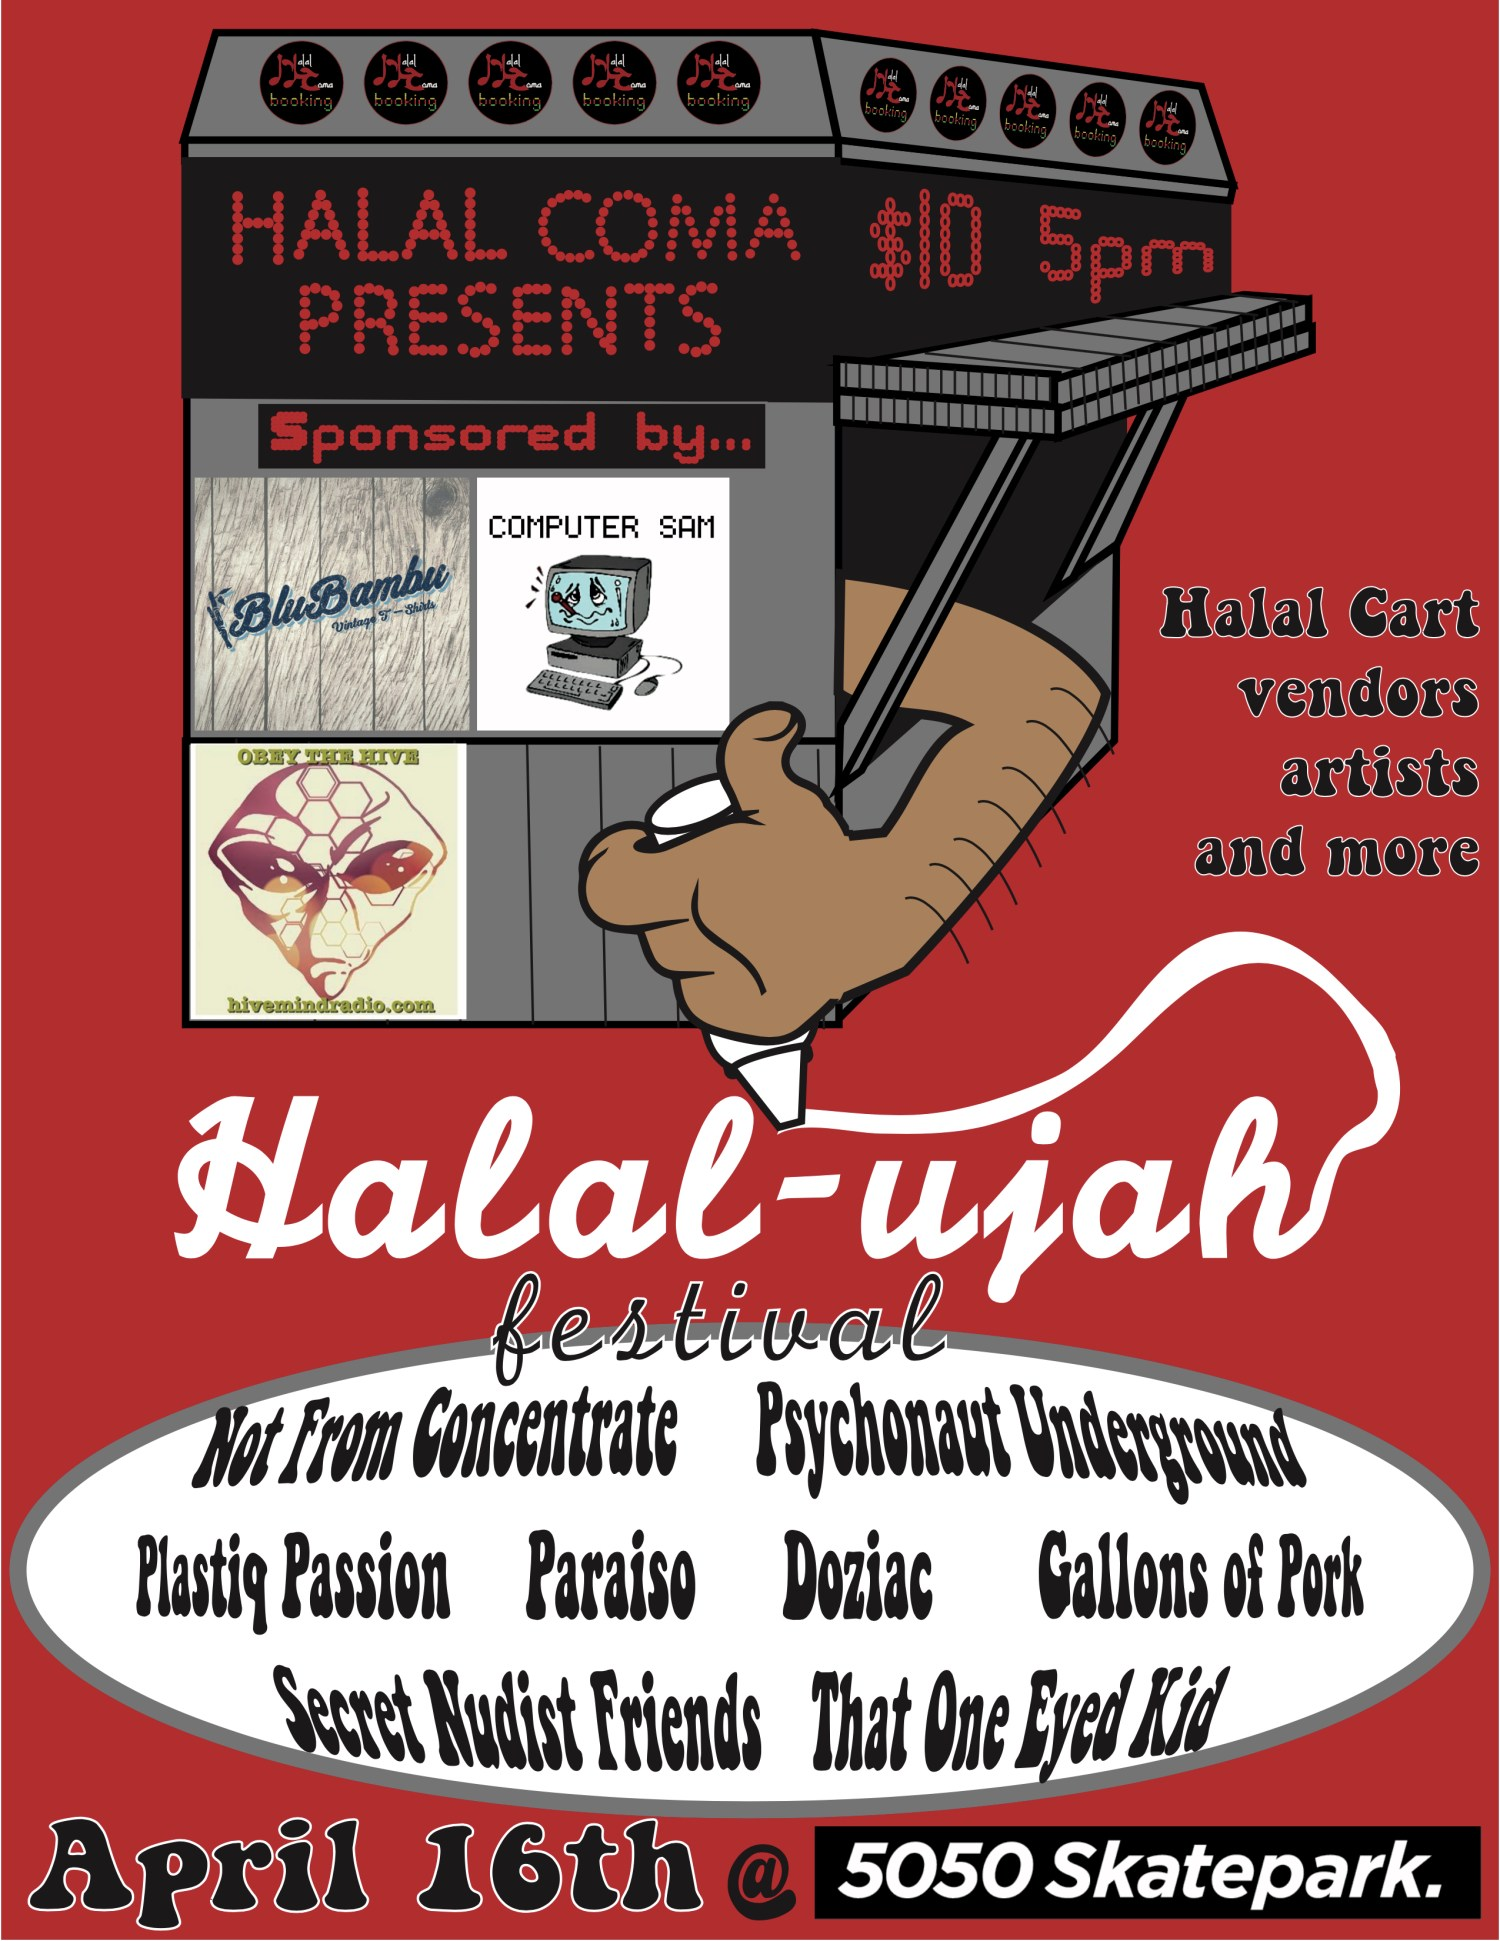 halal coma cart poster update 3.6